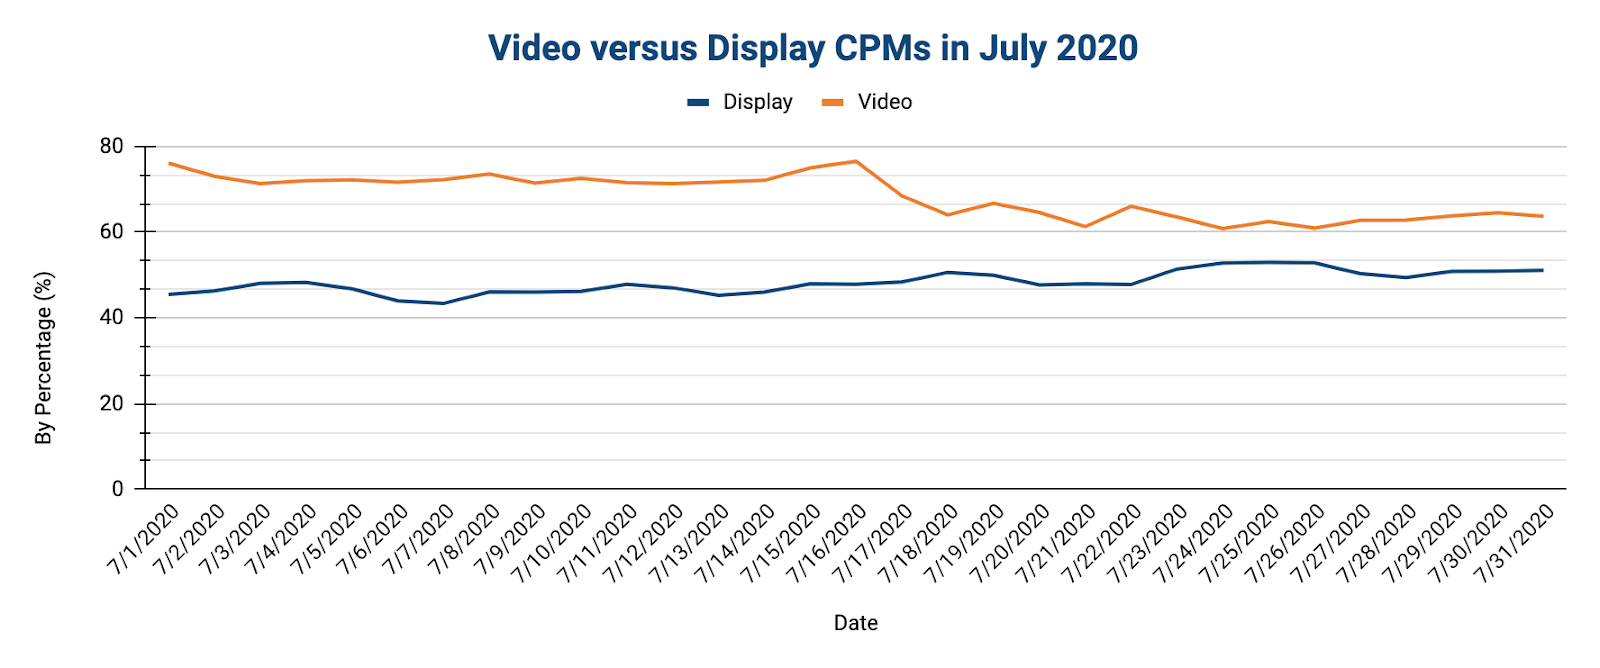 vide versus display CPMs in July 2020